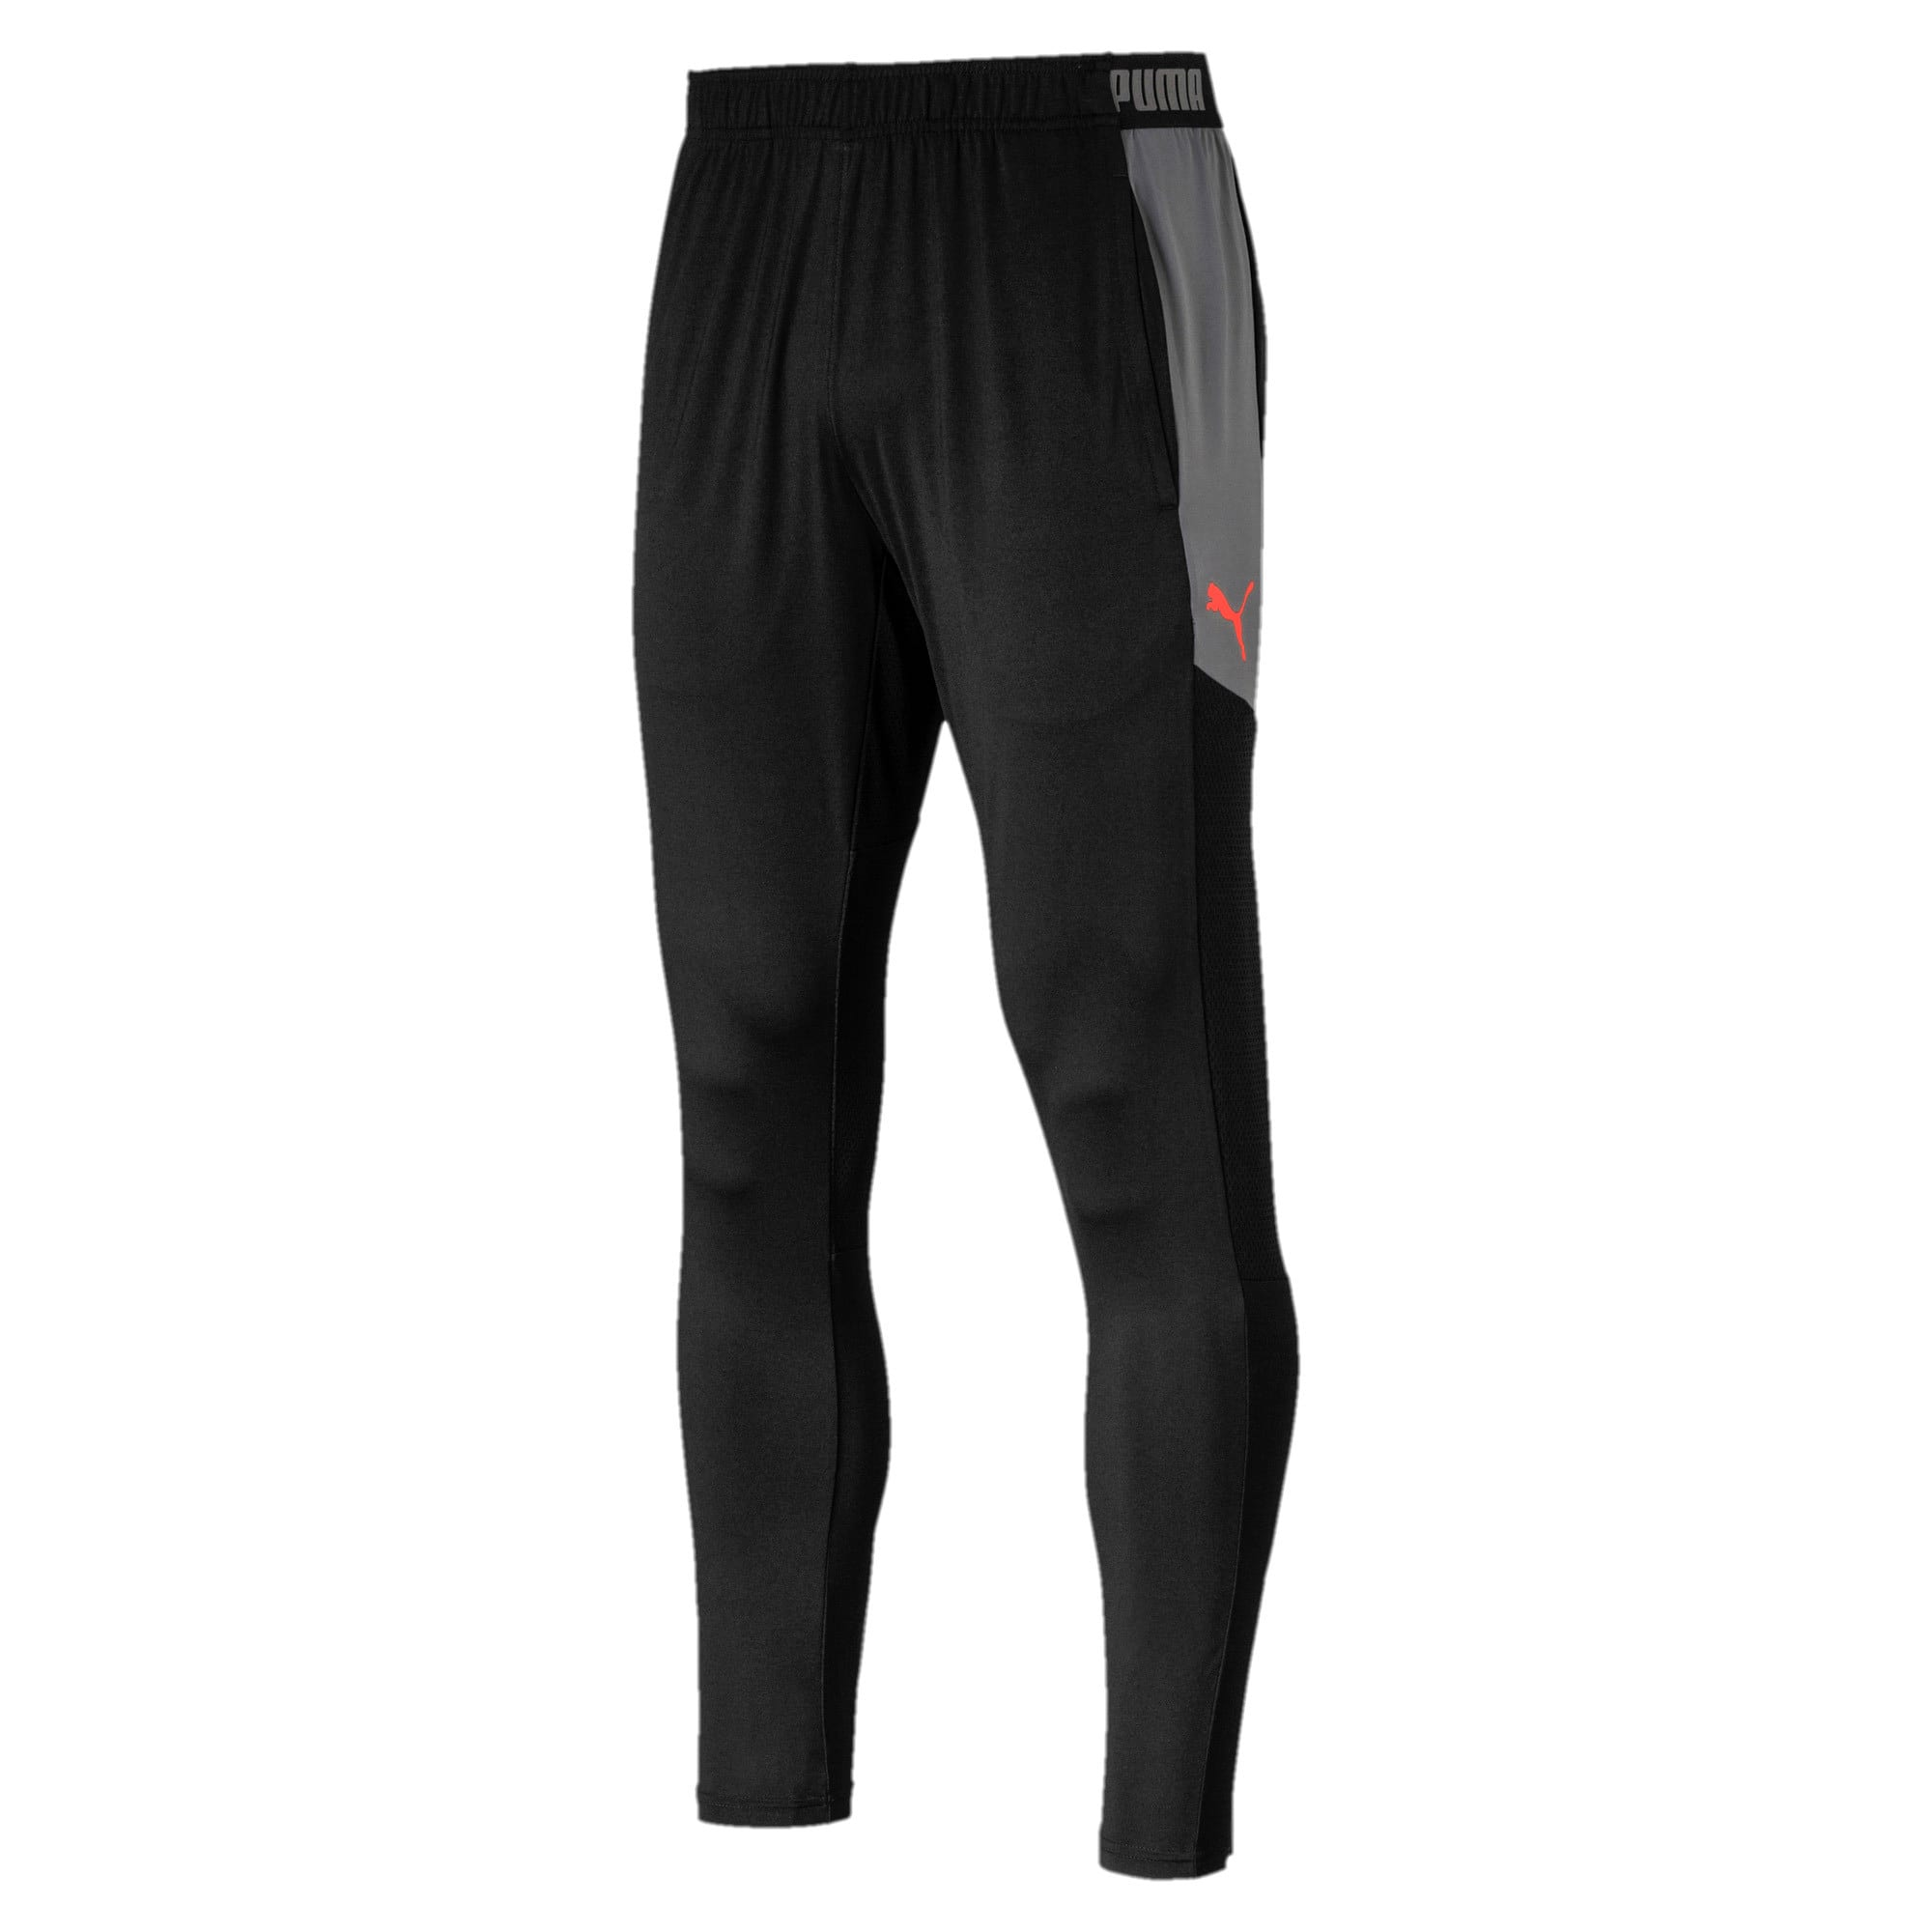 Thumbnail 4 of Knitted Men's Pants, Puma Black, medium